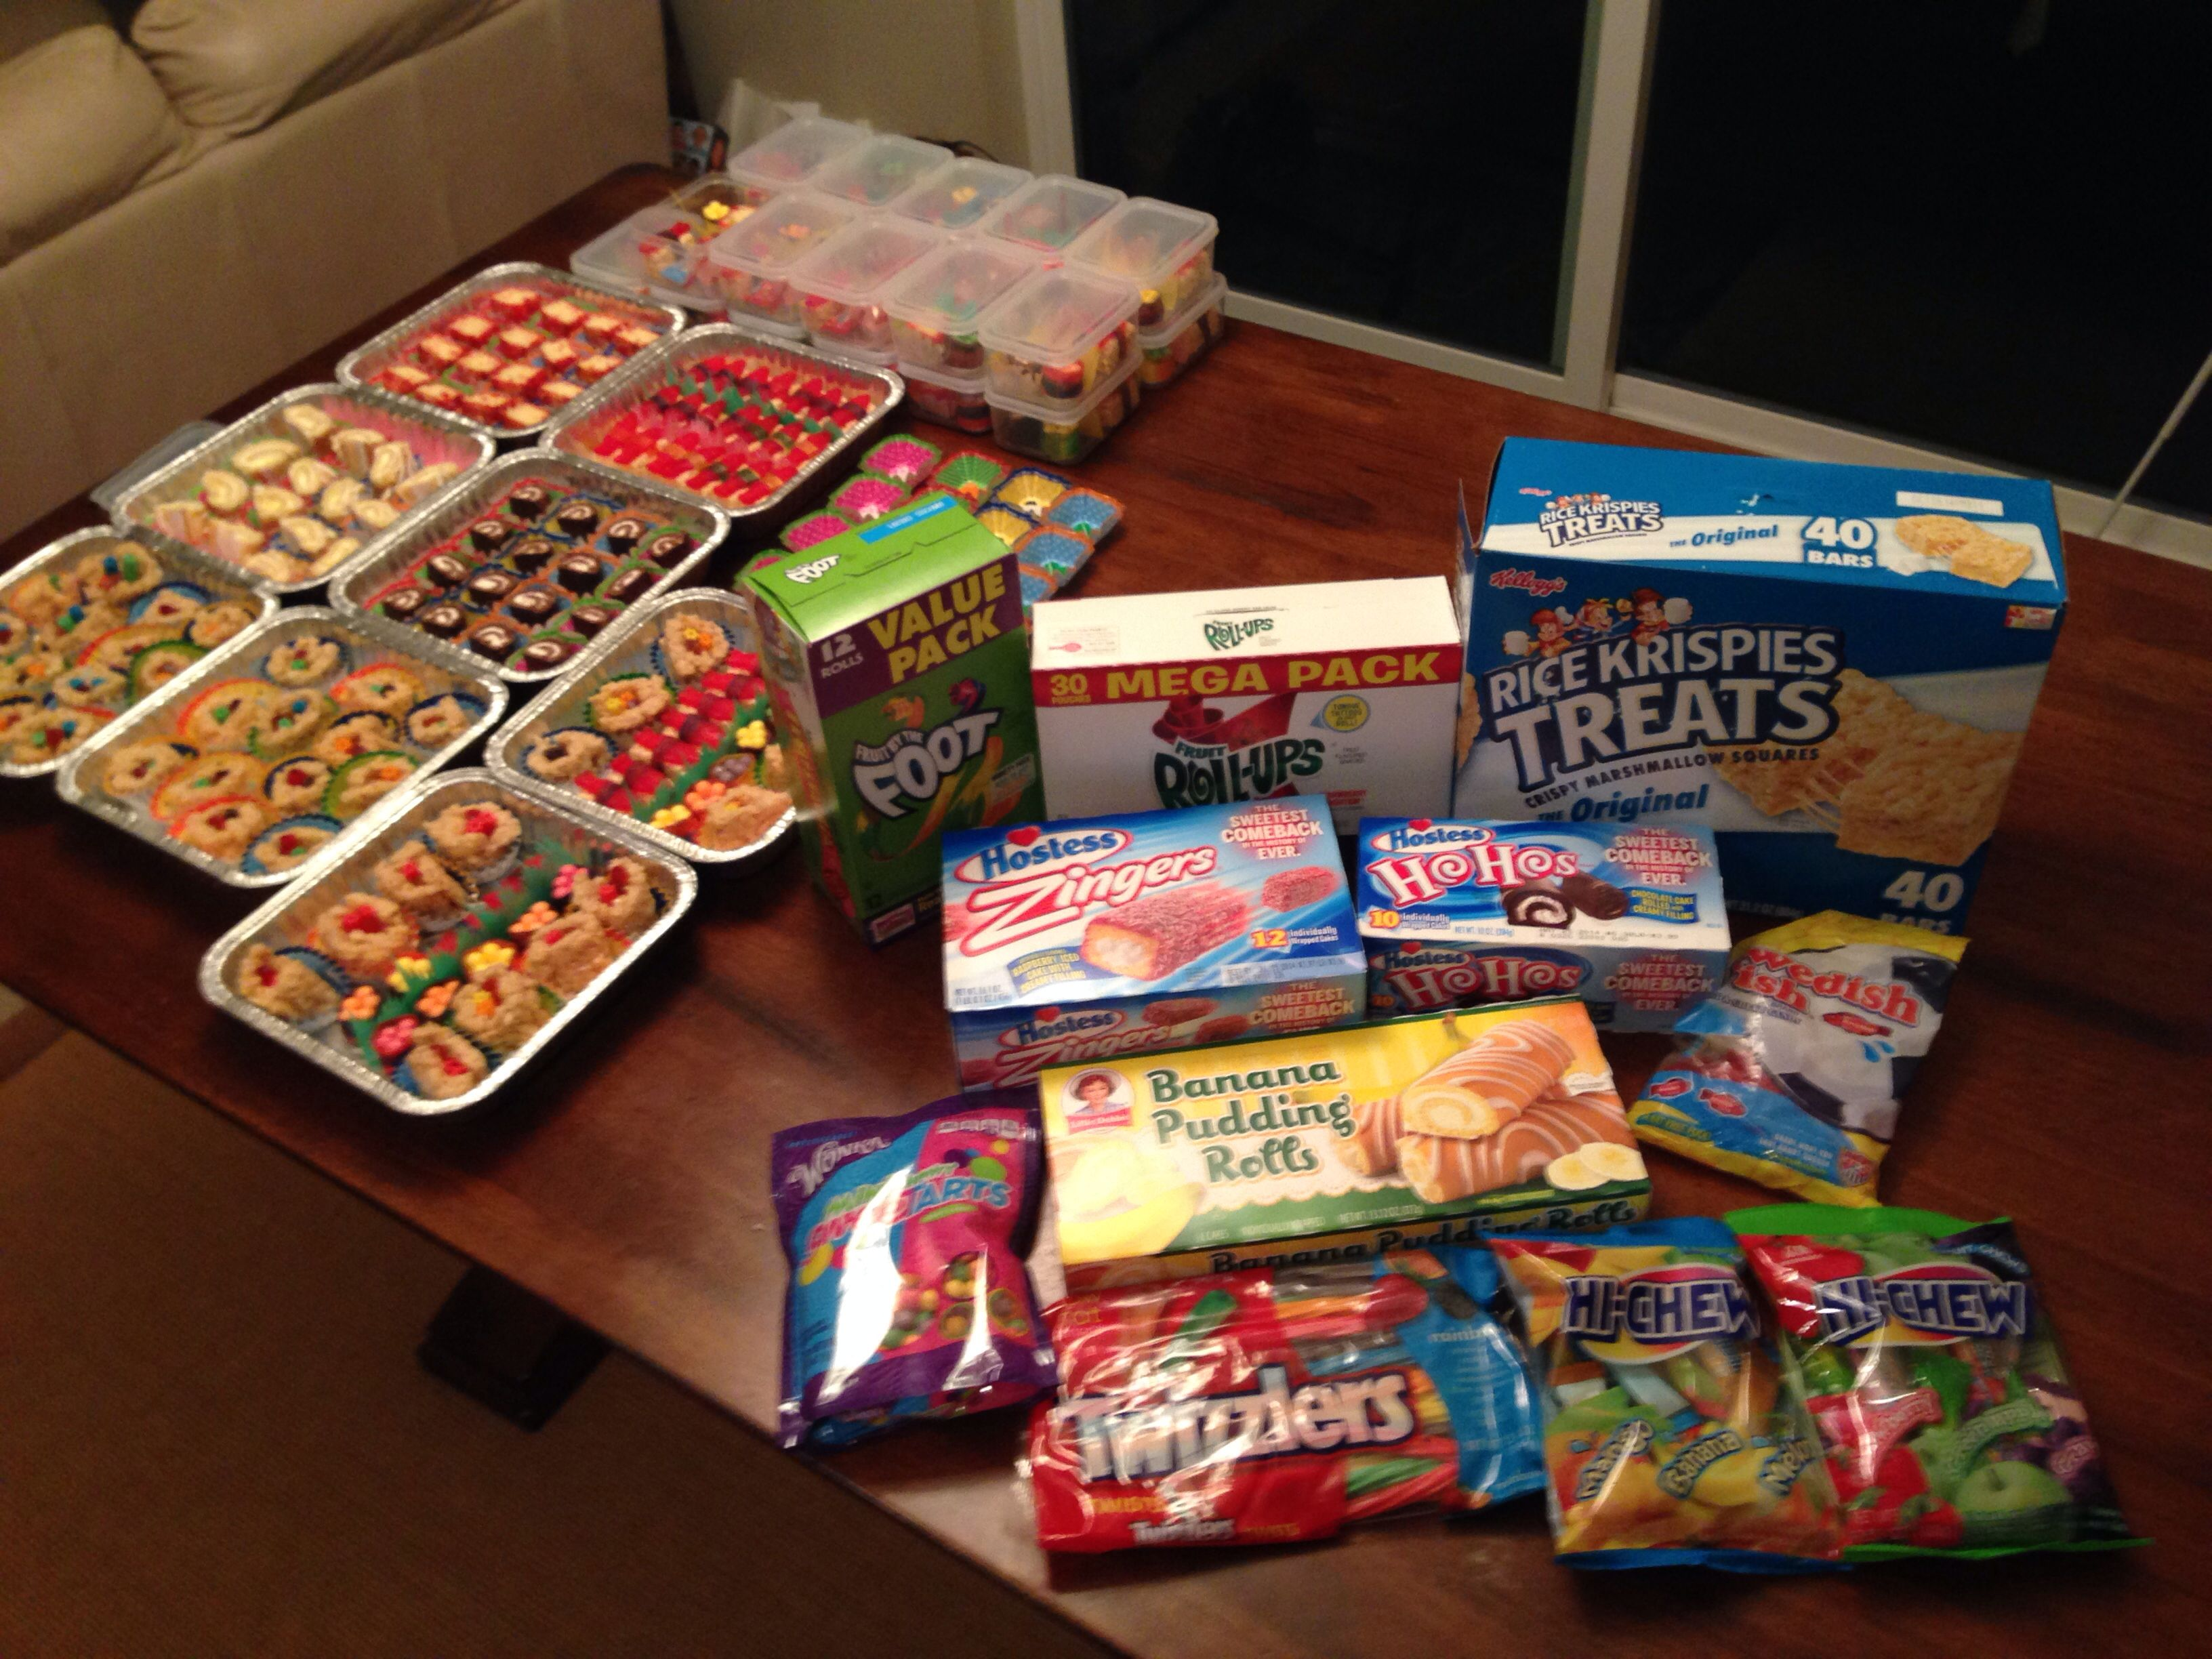 All of the ingredients (plus marshmallows) purchased to make the full candy sushi trays and takeout boxes. #candysushi